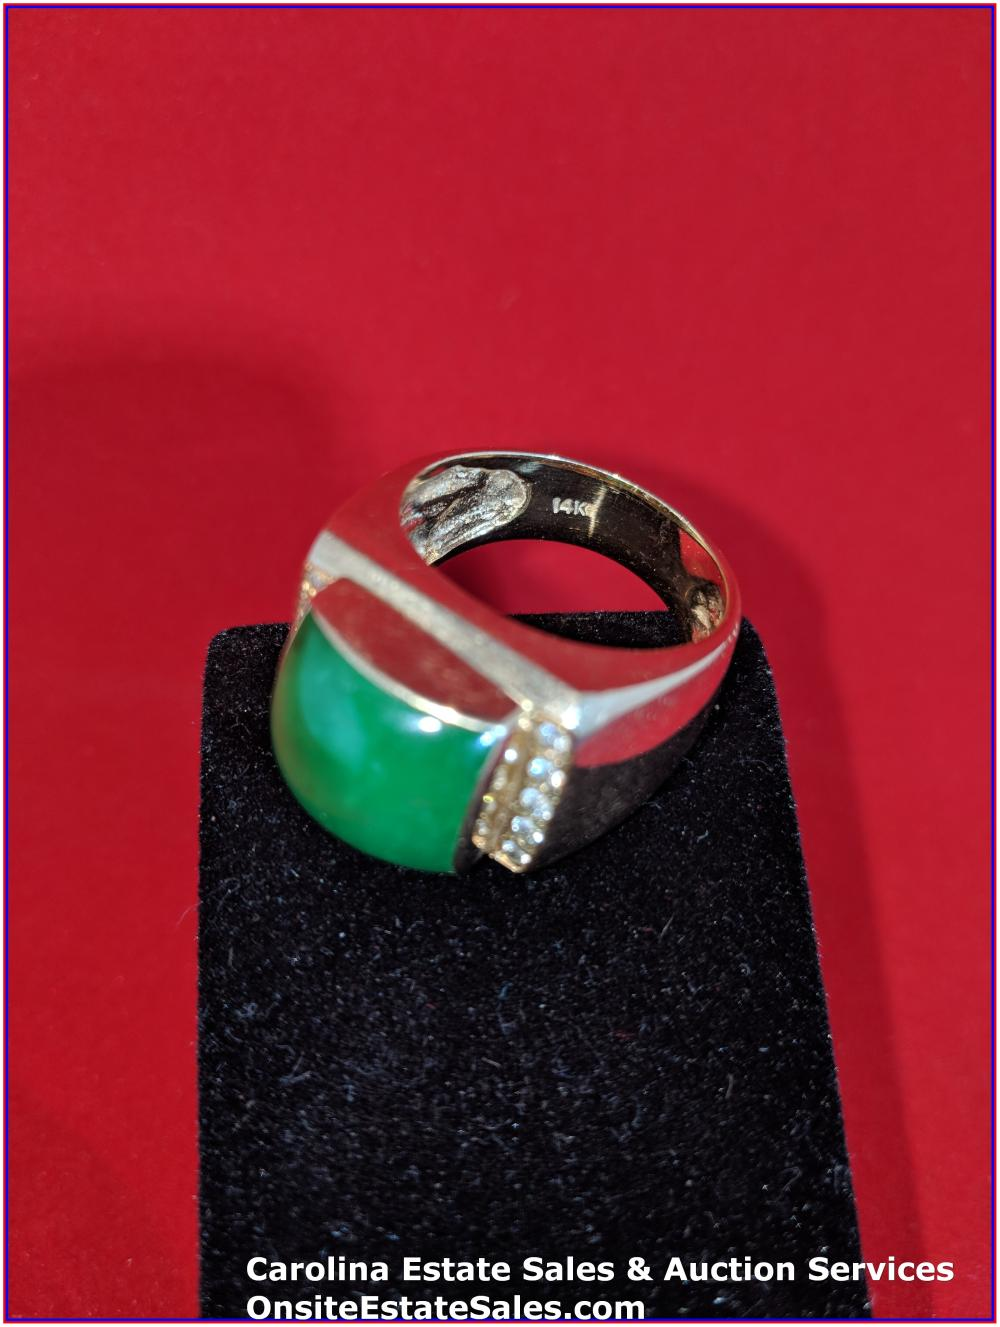 14K Gem Ring Gold 21 Grams Total Weight; Mans Imperial Jade with 0.42 ct Diamonds